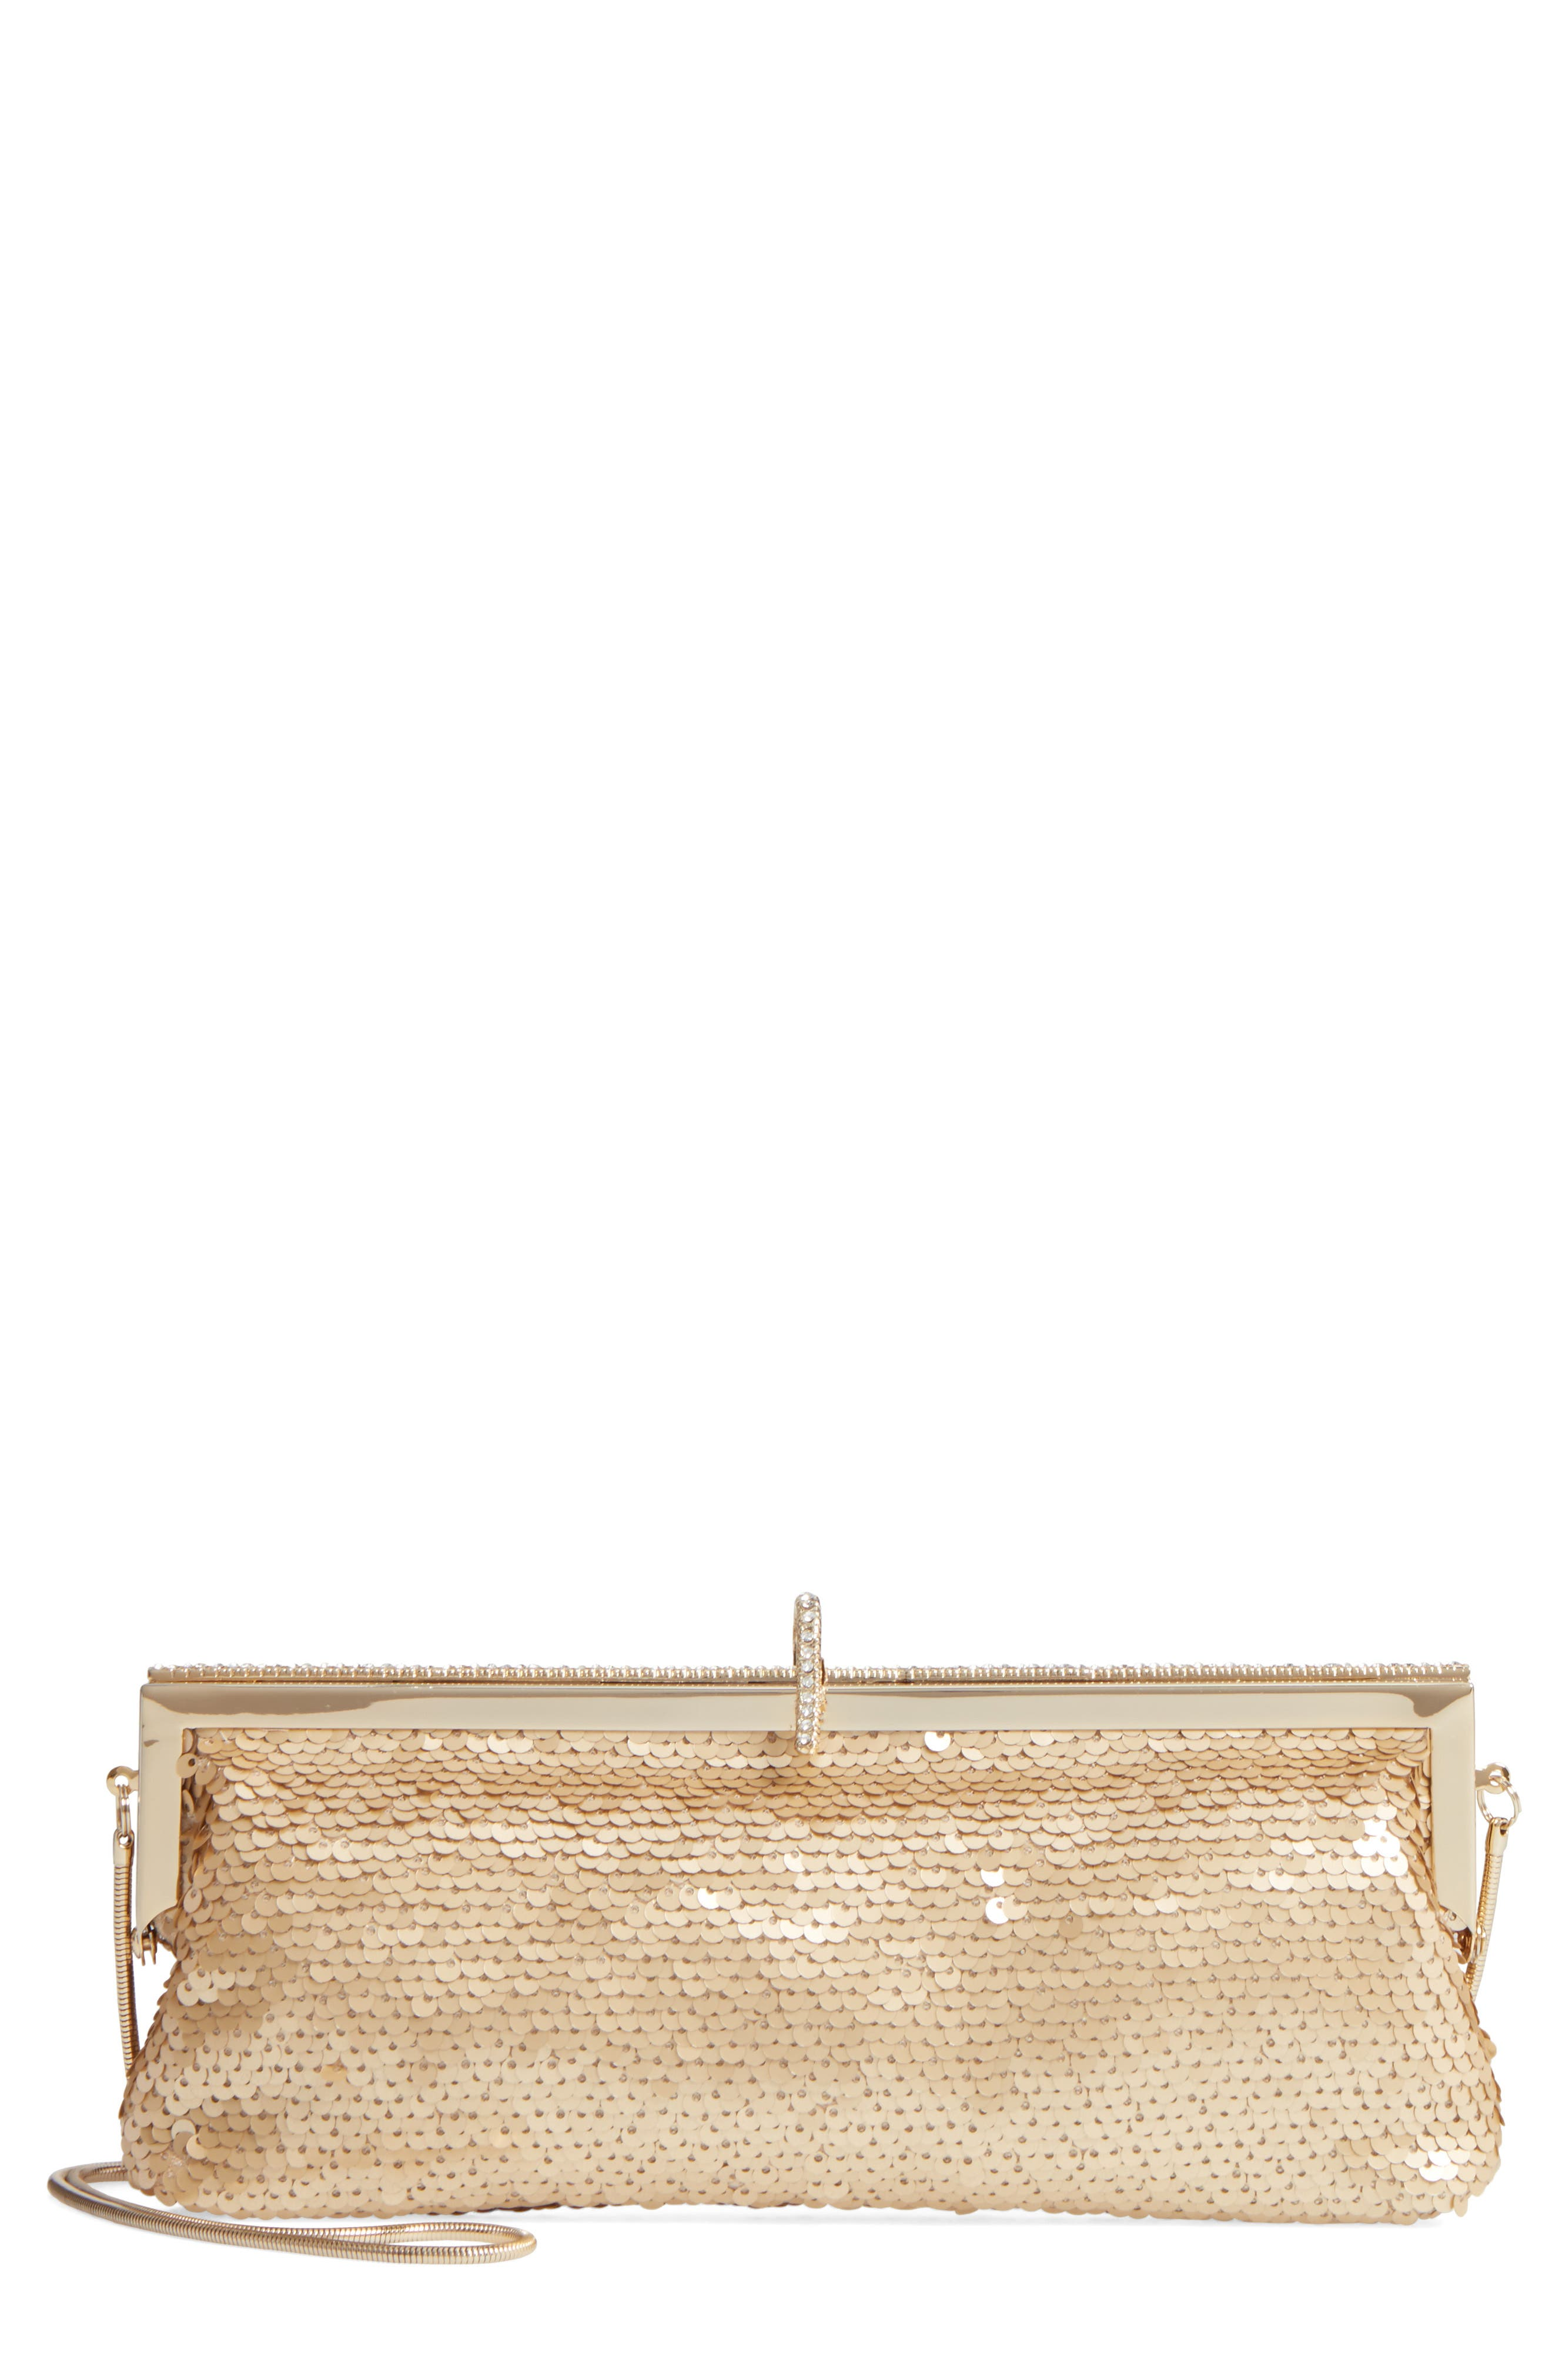 Badgley Mischka Dazzle Sequin Frame Clutch